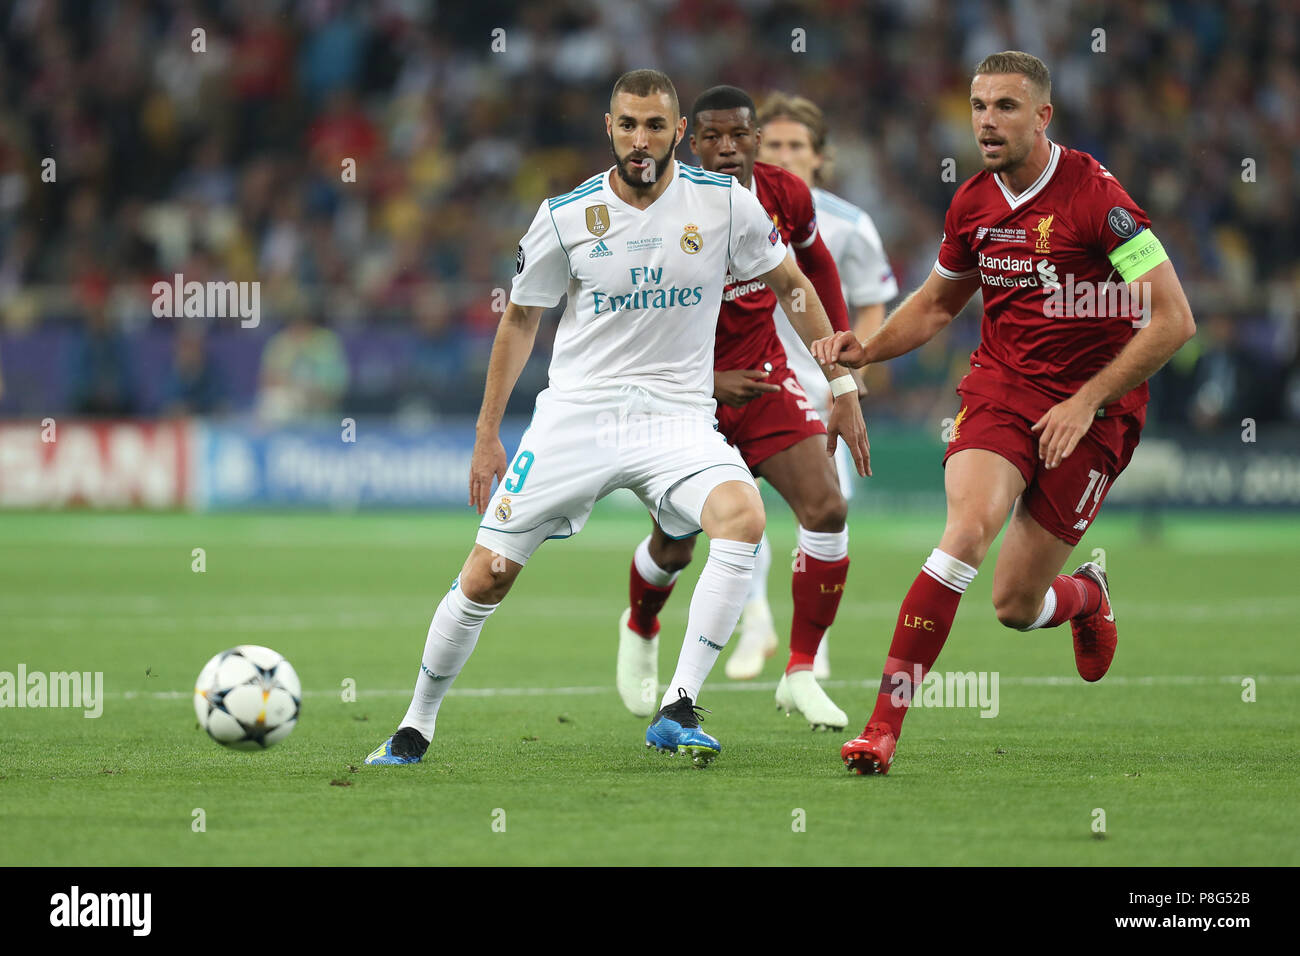 bf651a76e0ba73 Jordan Henderson Stock Photos   Jordan Henderson Stock Images - Alamy